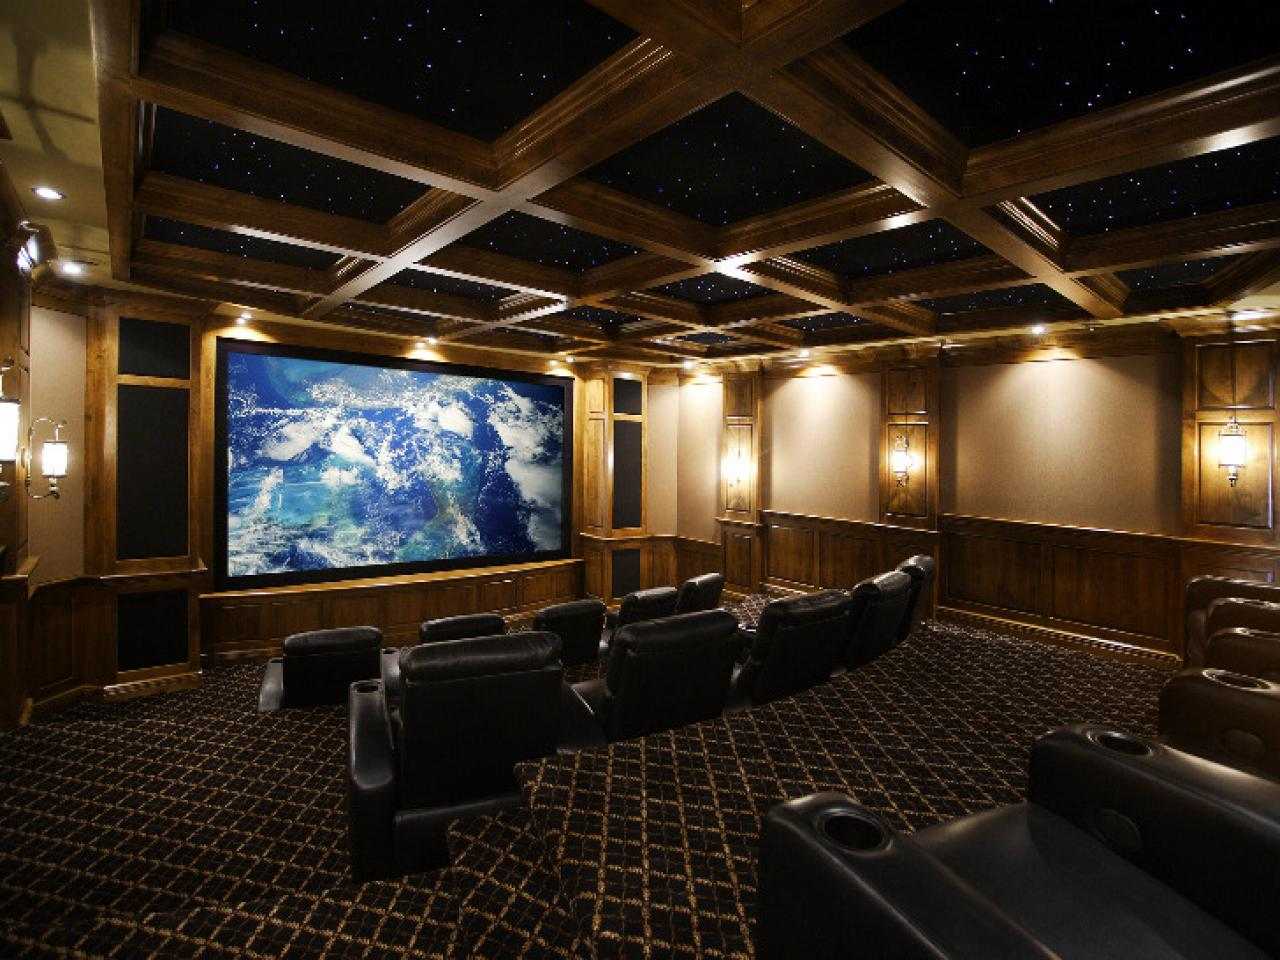 Home Theater Design Ideas oversize furniture and art furnish a serene malibu california screening room designed by scott Decked Out Theater